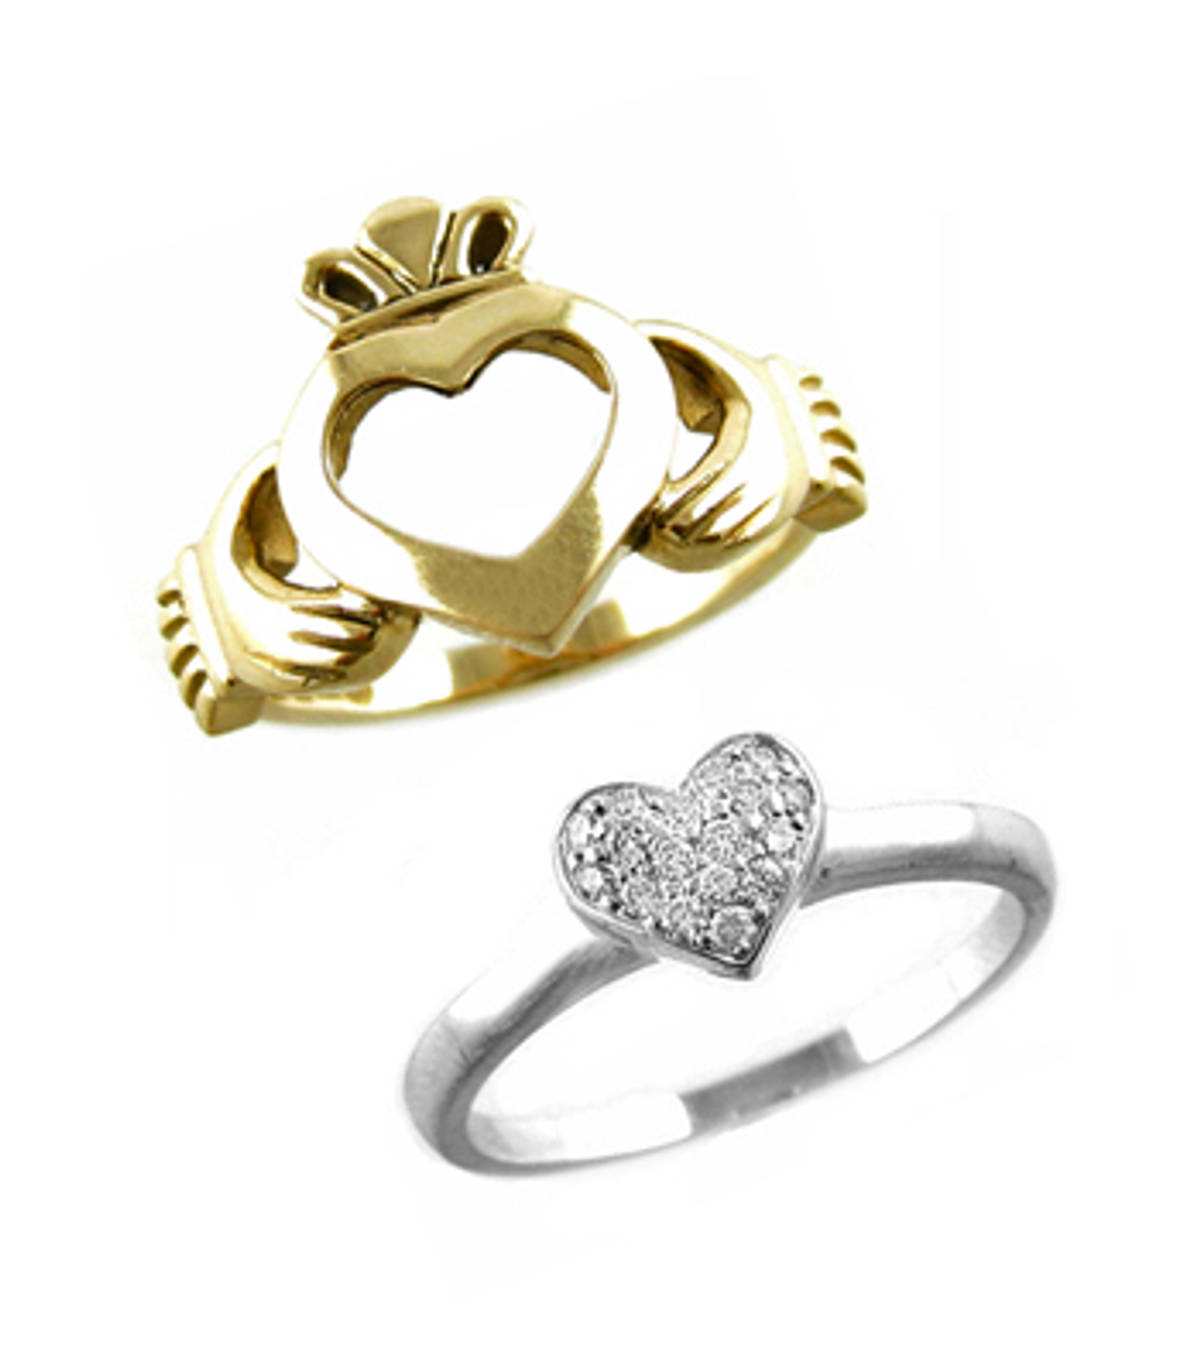 Irish made;14 carat white/yellow gold 0.20cts diamonds claddagh engagement ring(s) in 2 parts